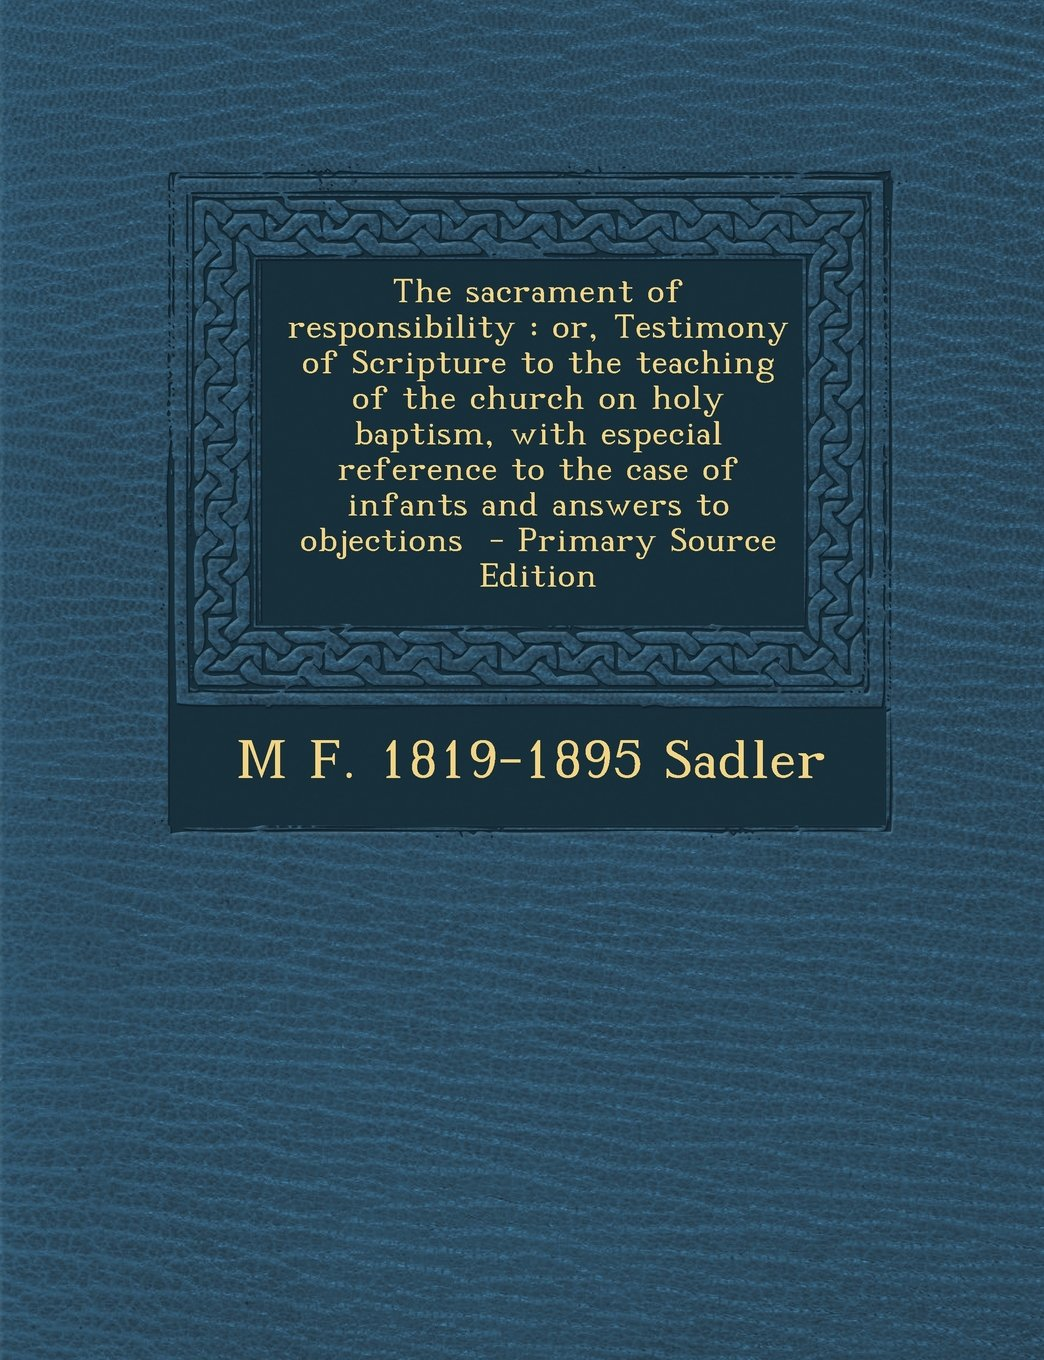 The sacrament of responsibility: or, Testimony of Scripture to the teaching of the church on holy baptism, with especial reference to the case of ... to objections  - Primary Source Edition ebook